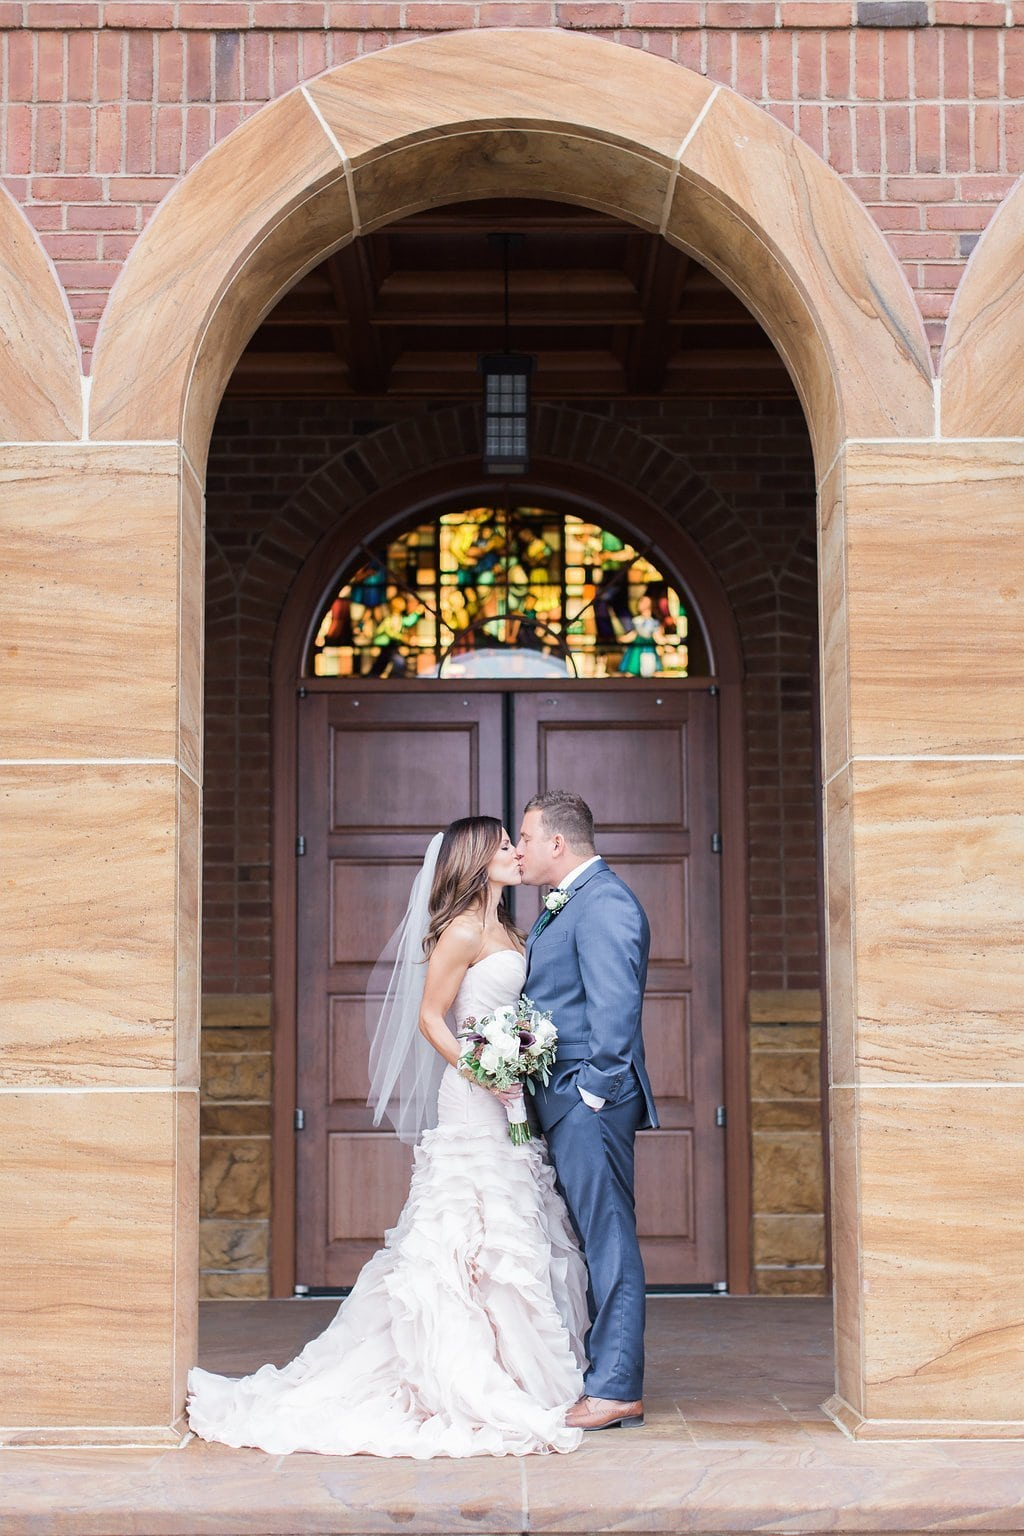 Photograph of the bride and groom kissing in the archway outside Saints John and Paul Roman Catholic Church- J Verno Studios Winter Wedding